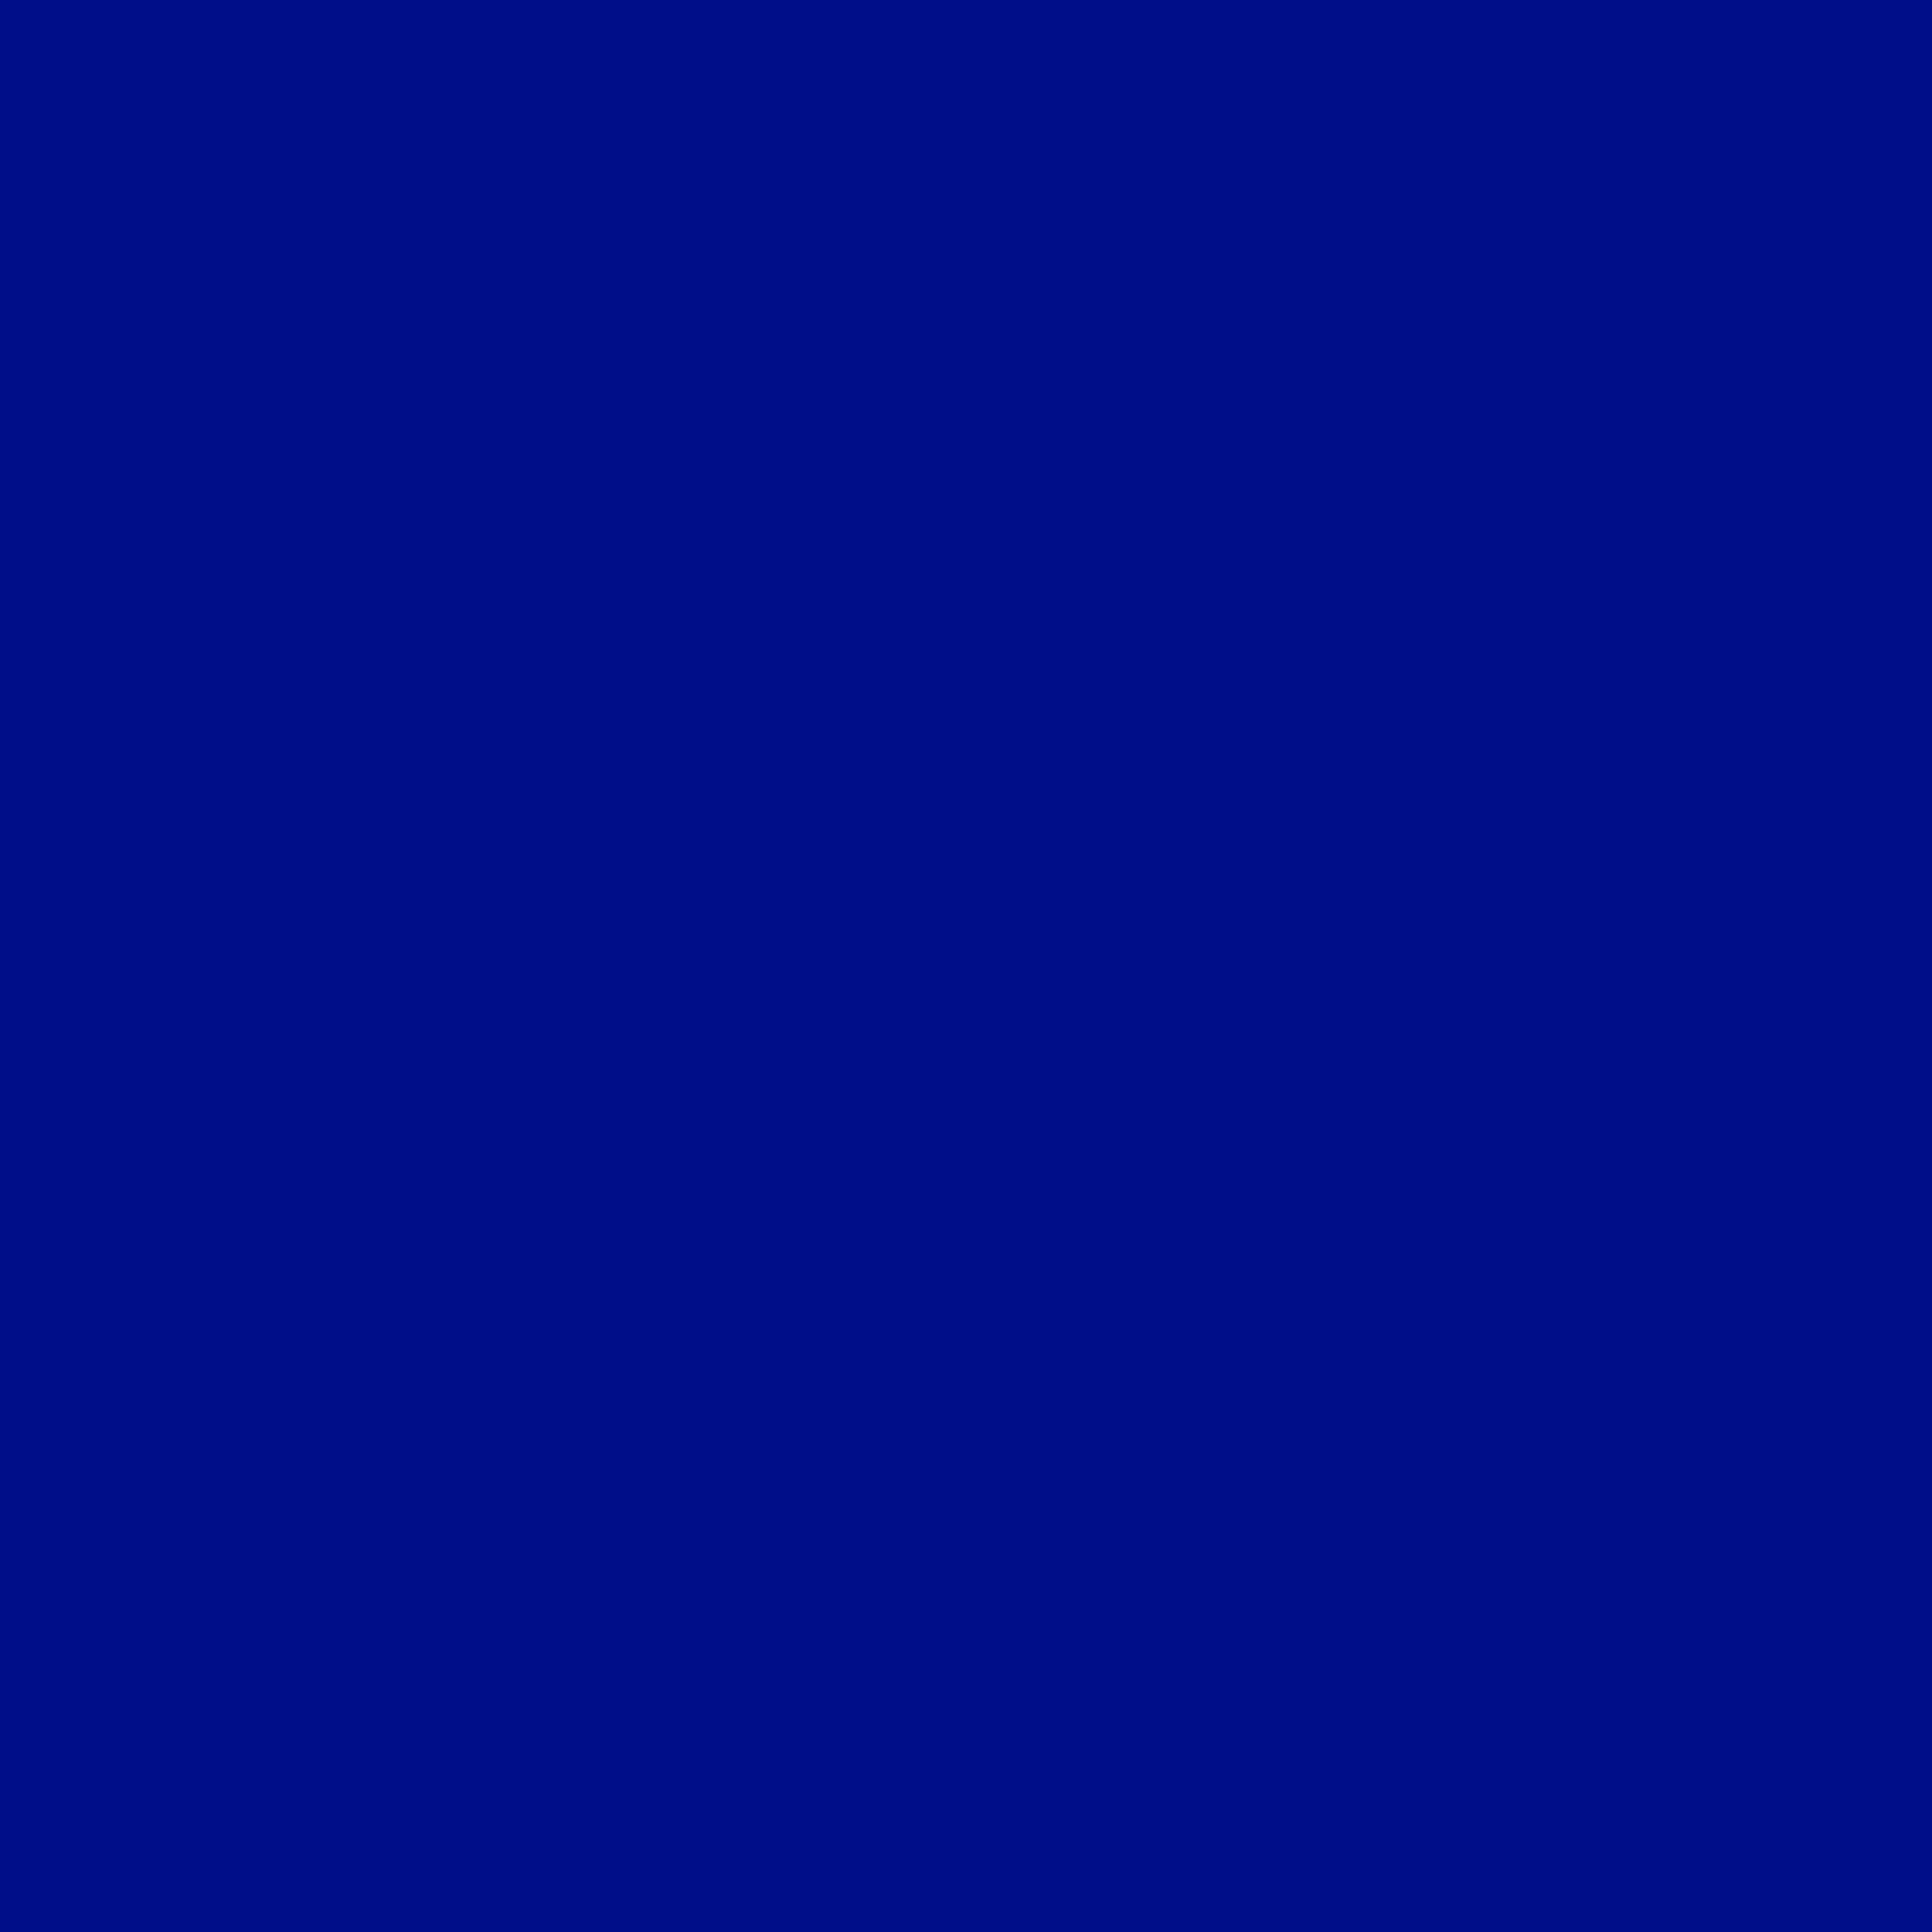 2732x2732 Phthalo Blue Solid Color Background